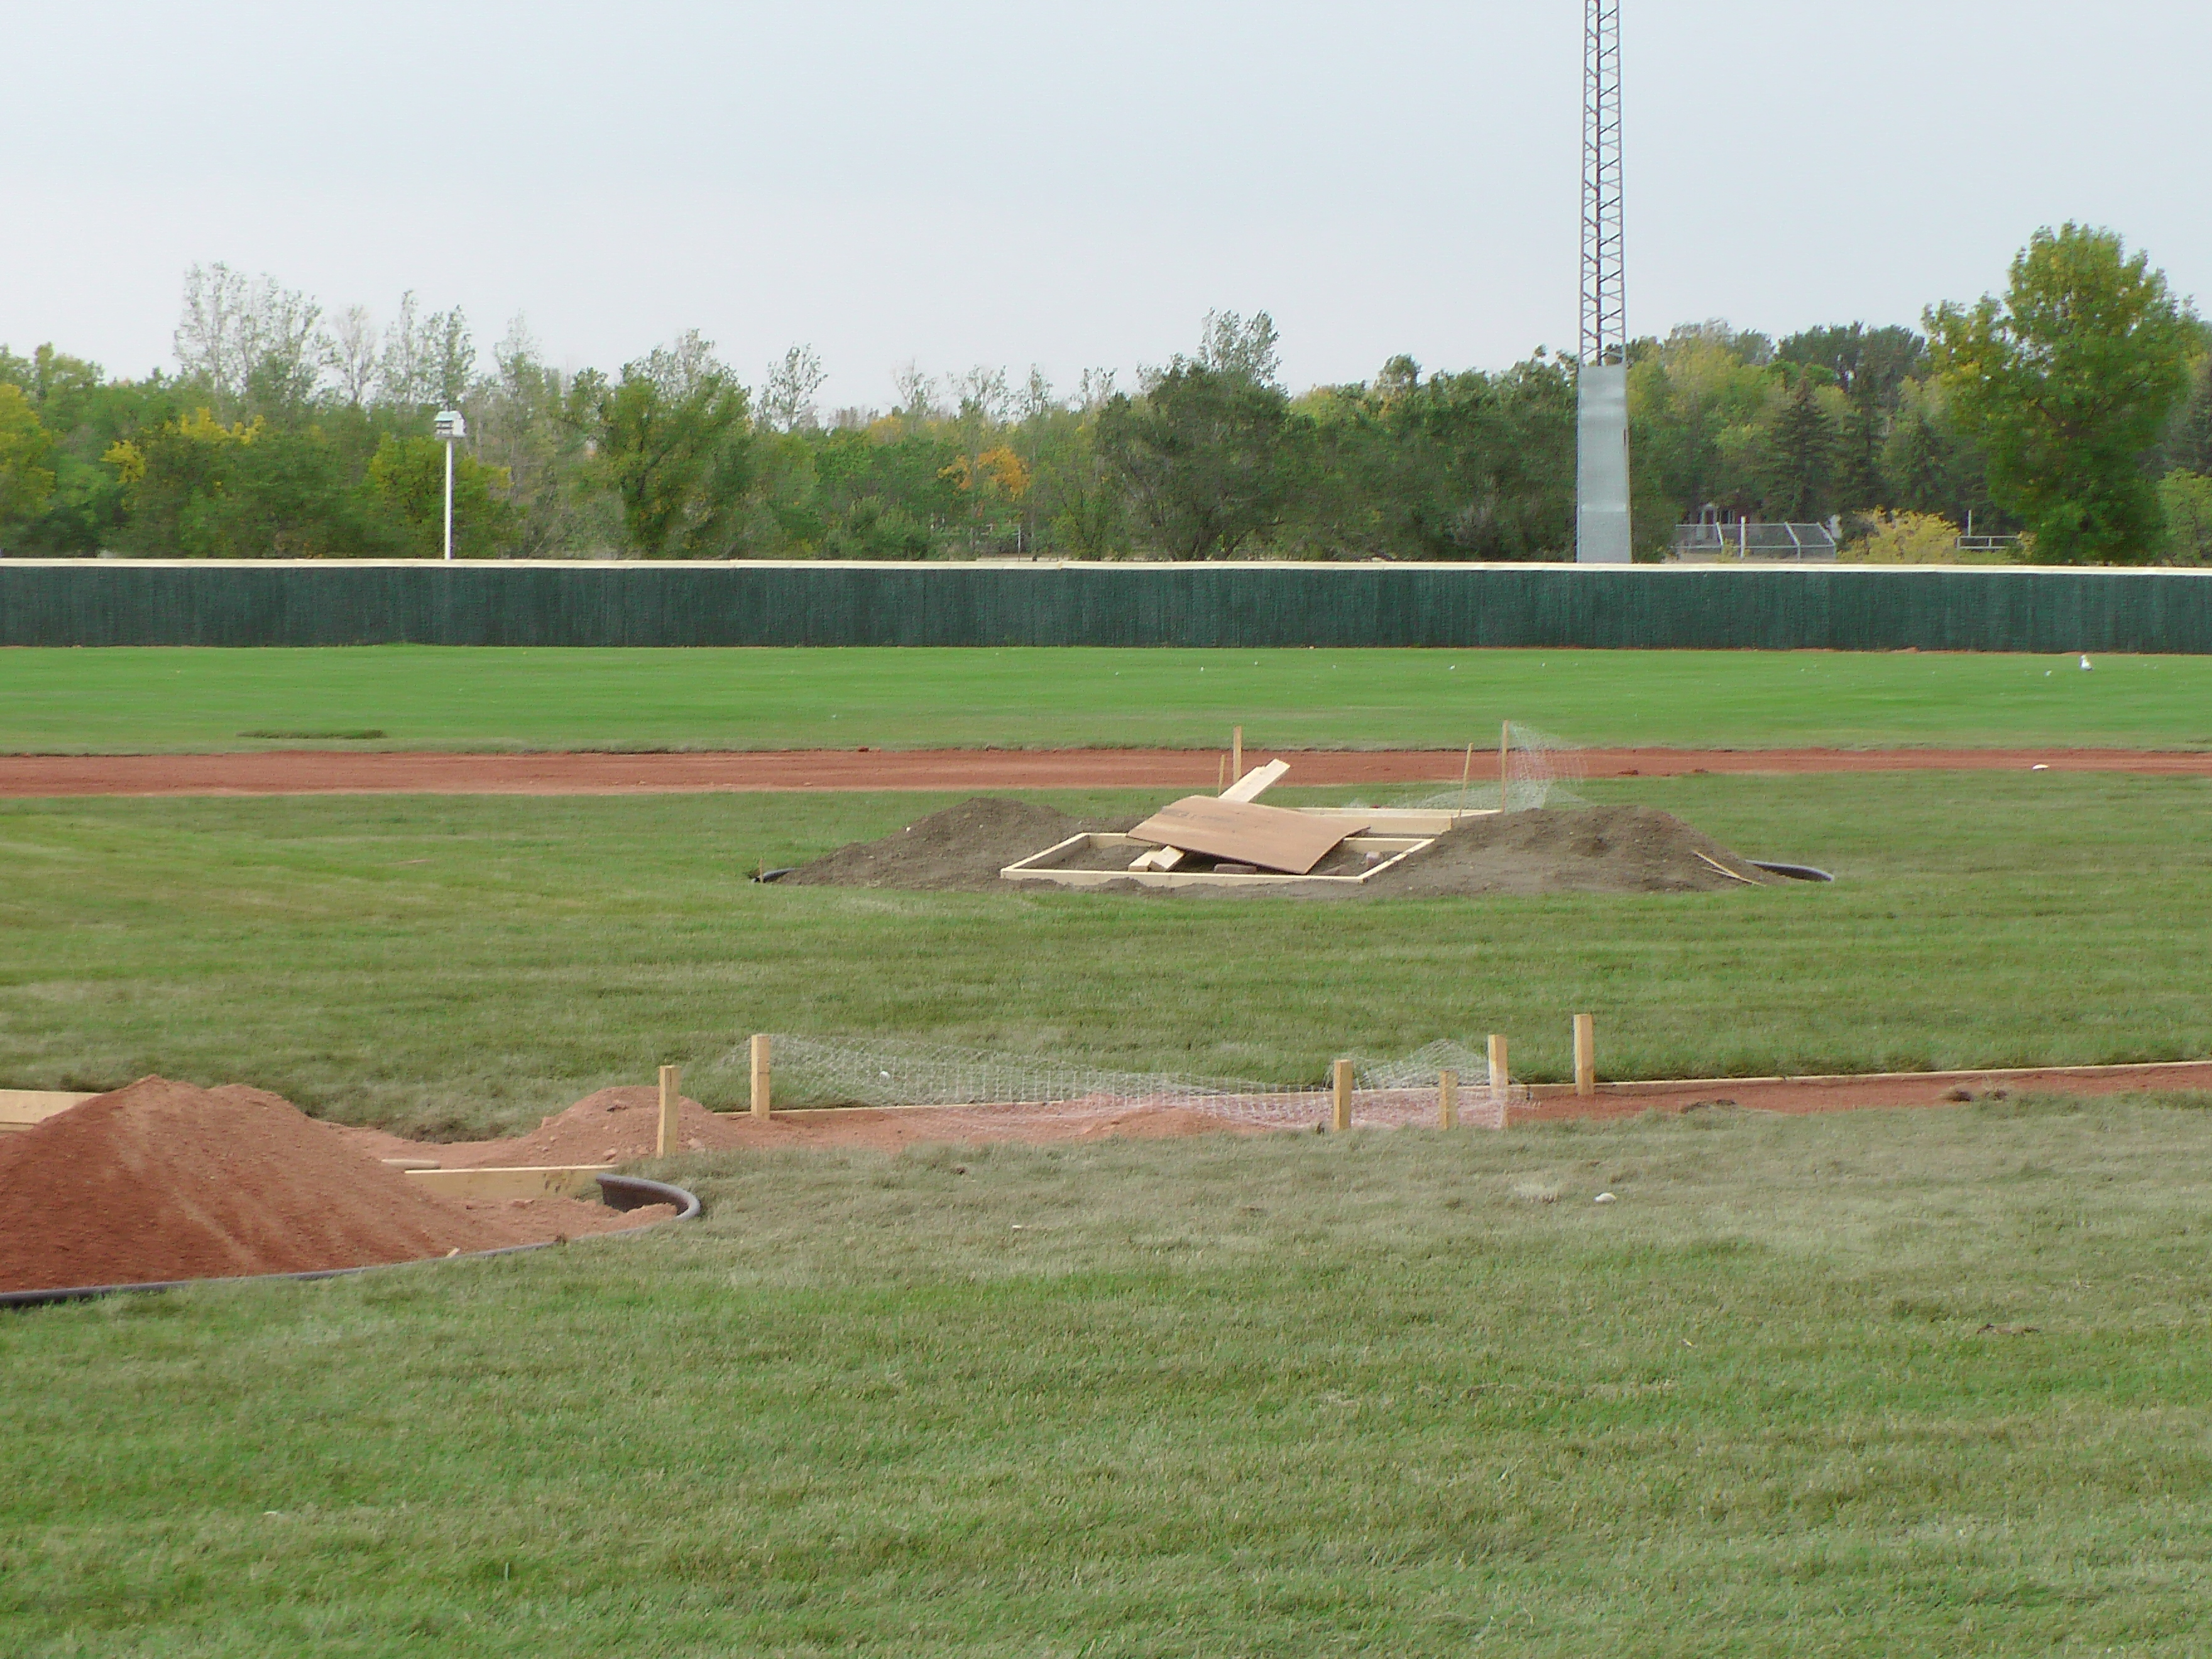 Sept 7 & 8 2018, Optimist Park Field Renovations, sod down being watered - Image 17